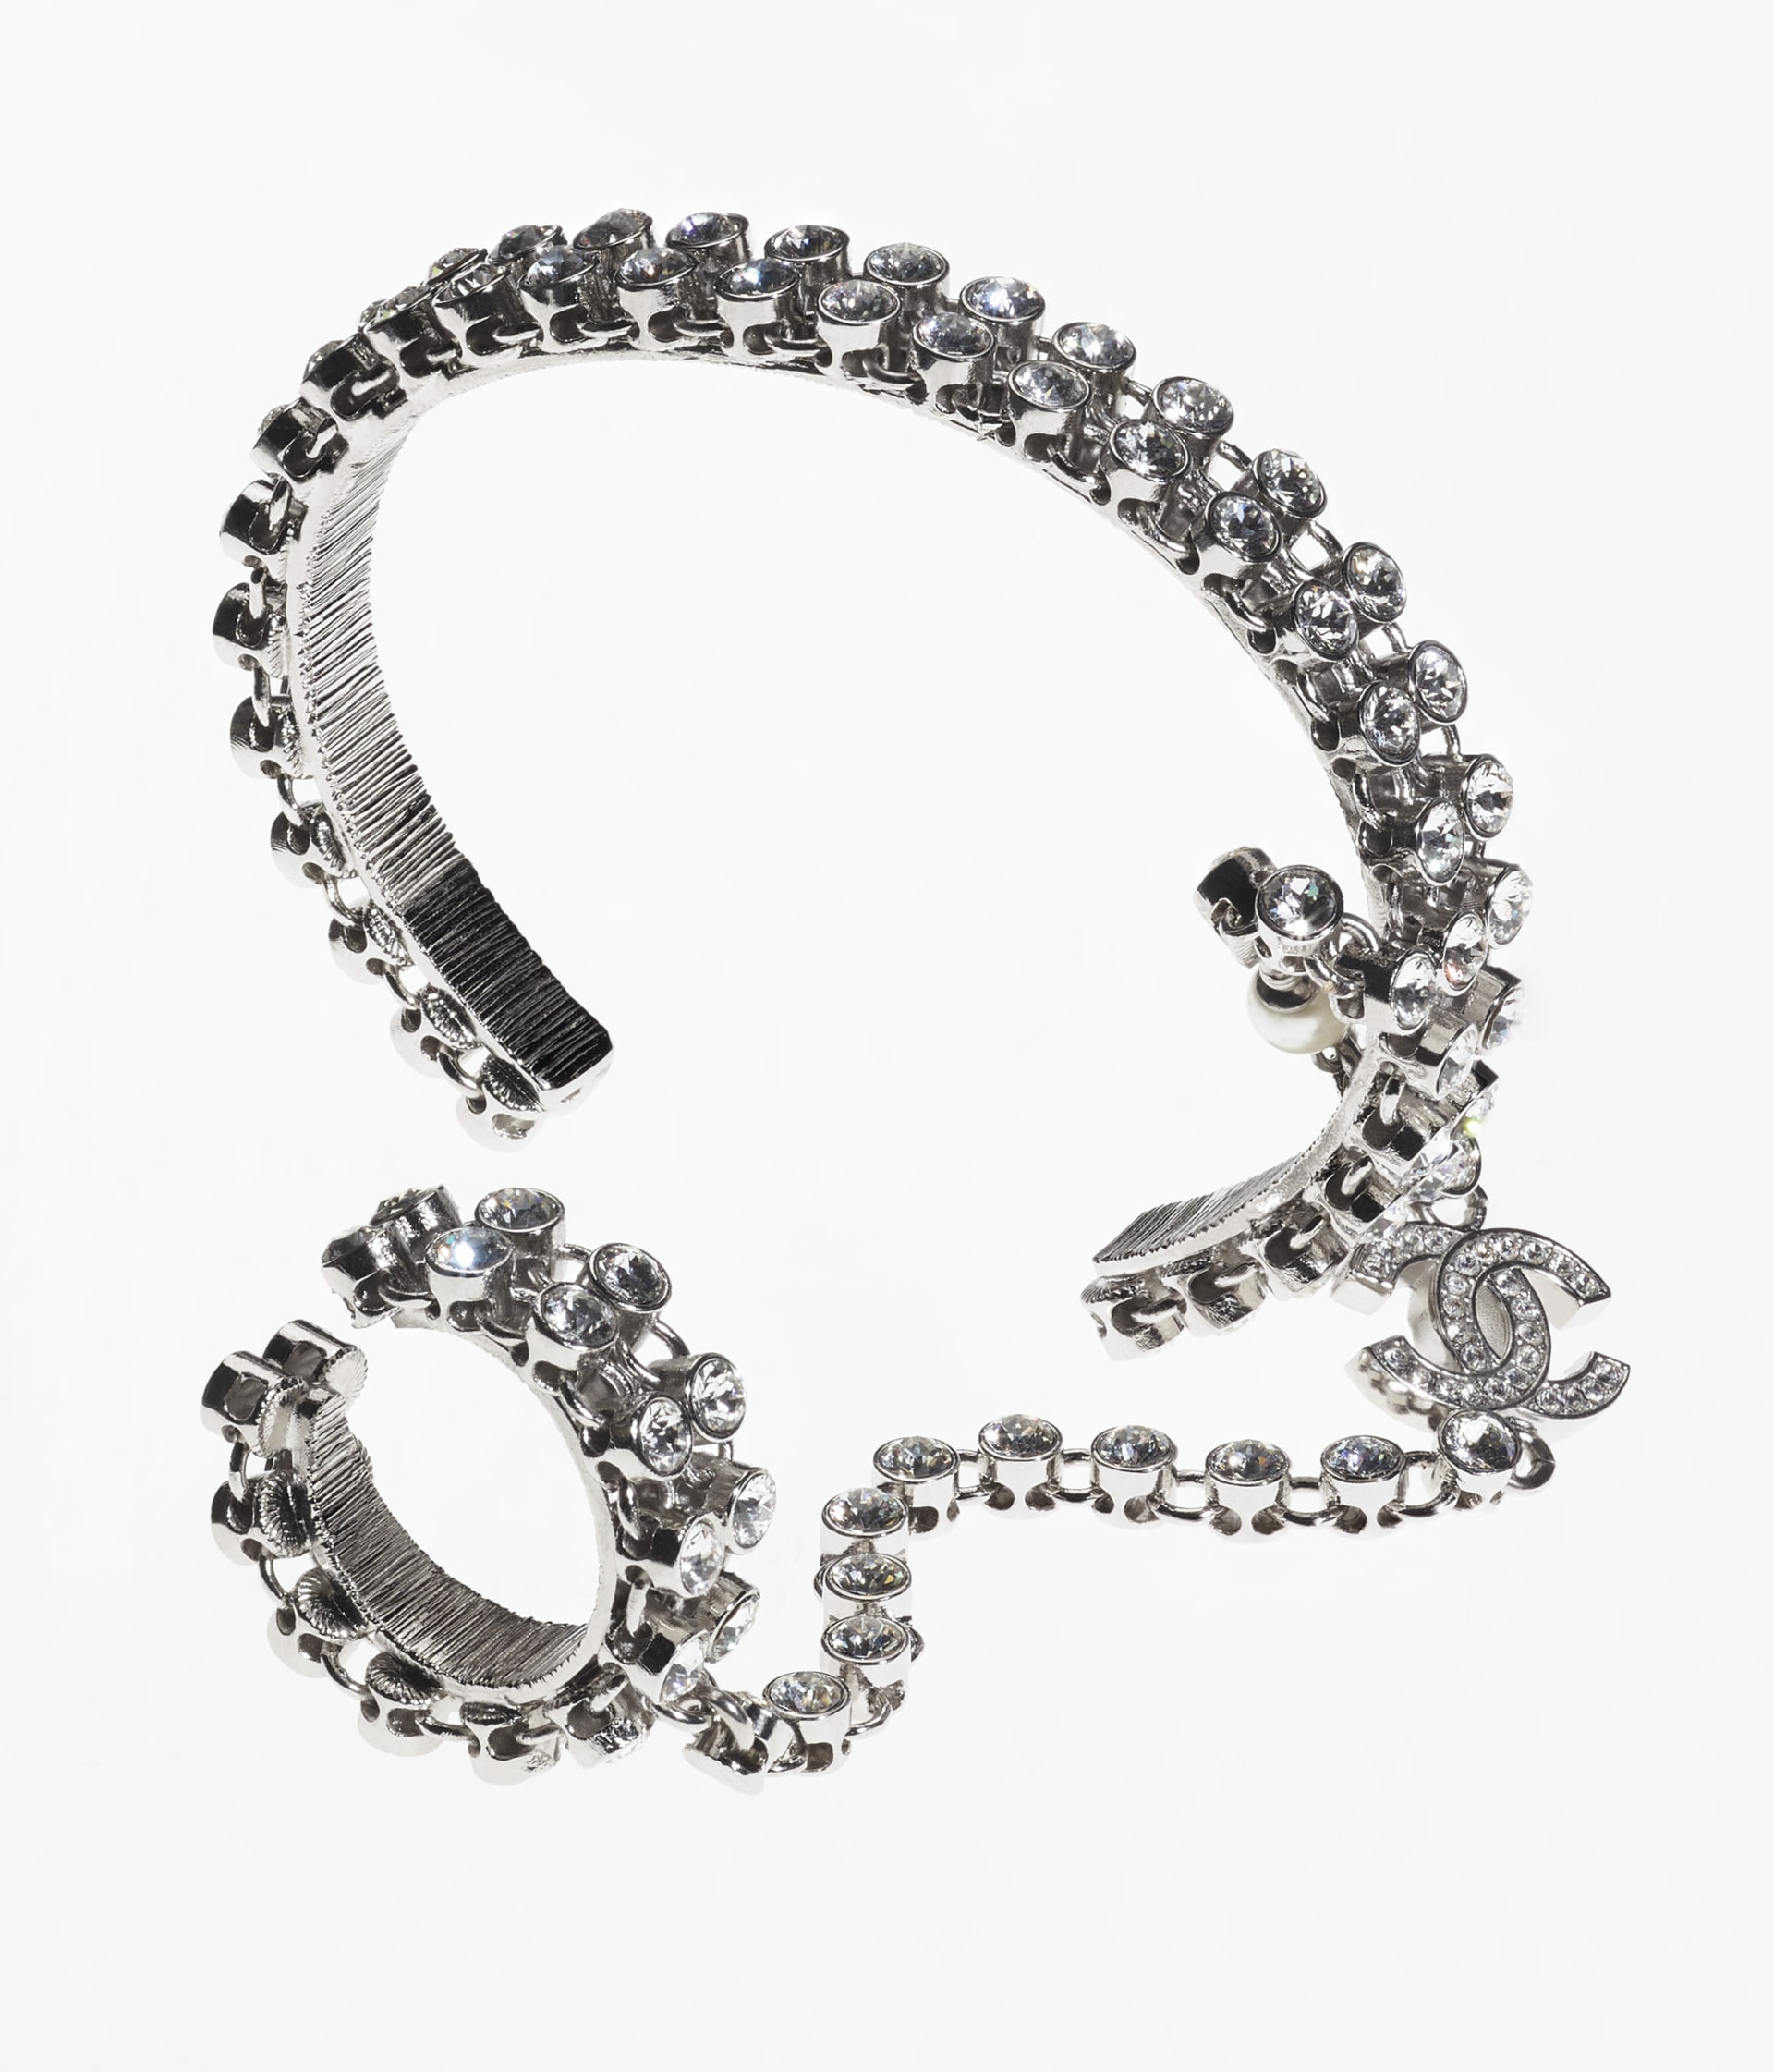 image 2 - Bracelet - Metal, Strass & Glass Pearls - Silver, Crystal & Pearly White